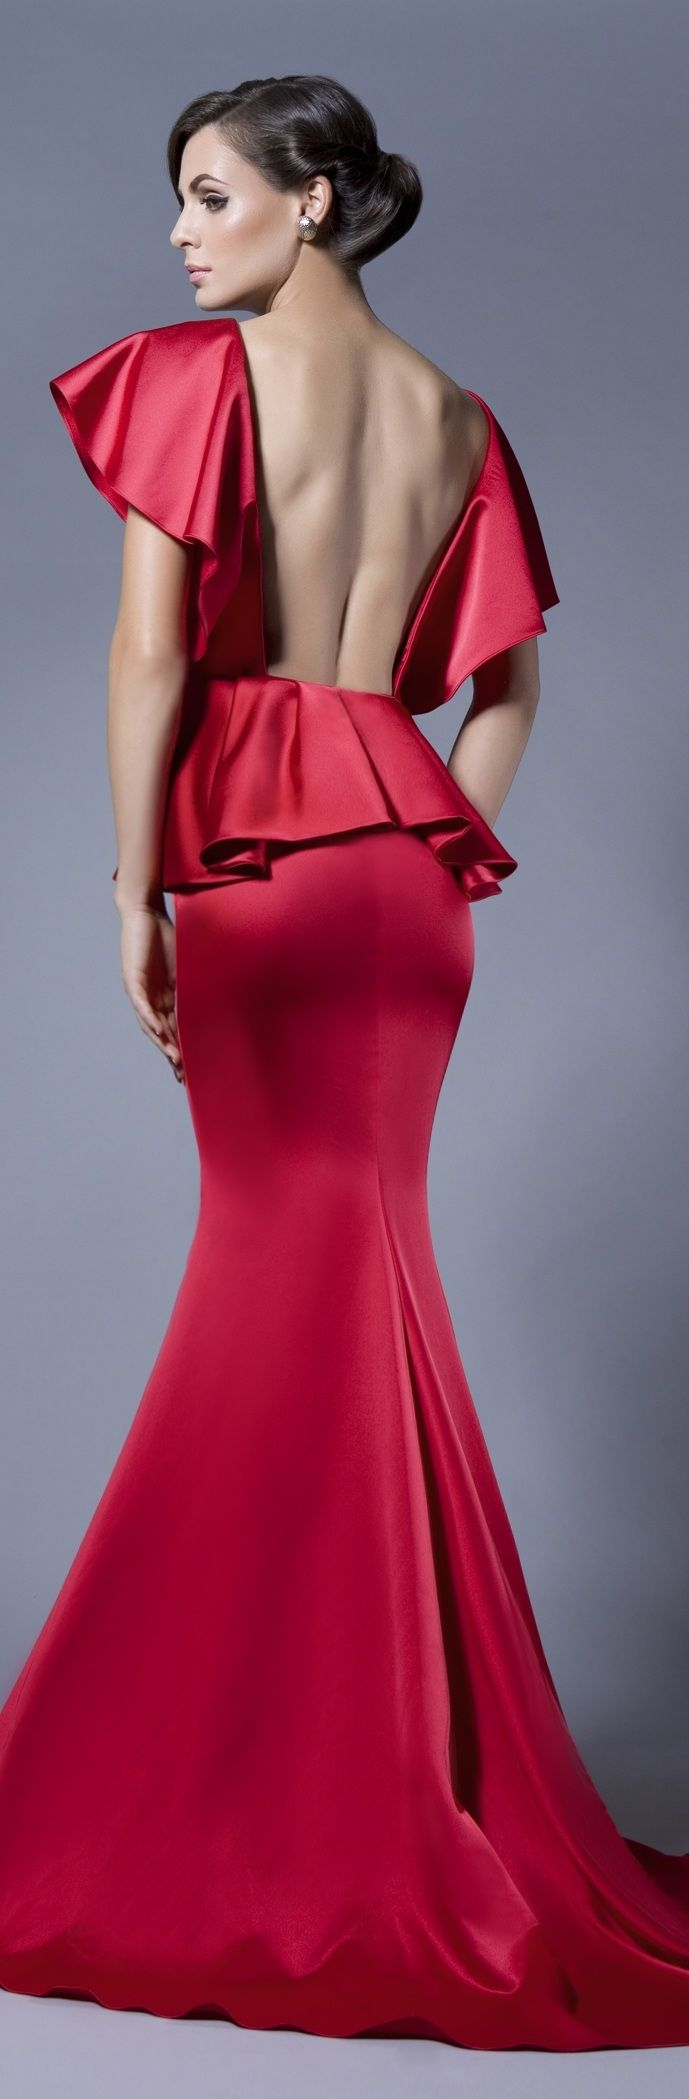 Love the draping of this!  Can't help but think there needs to be a slight curve to the small of the back, tho.  Too square for rest of dress.  Bien Savvy haute couture 2013/2014 ~  ♥!!